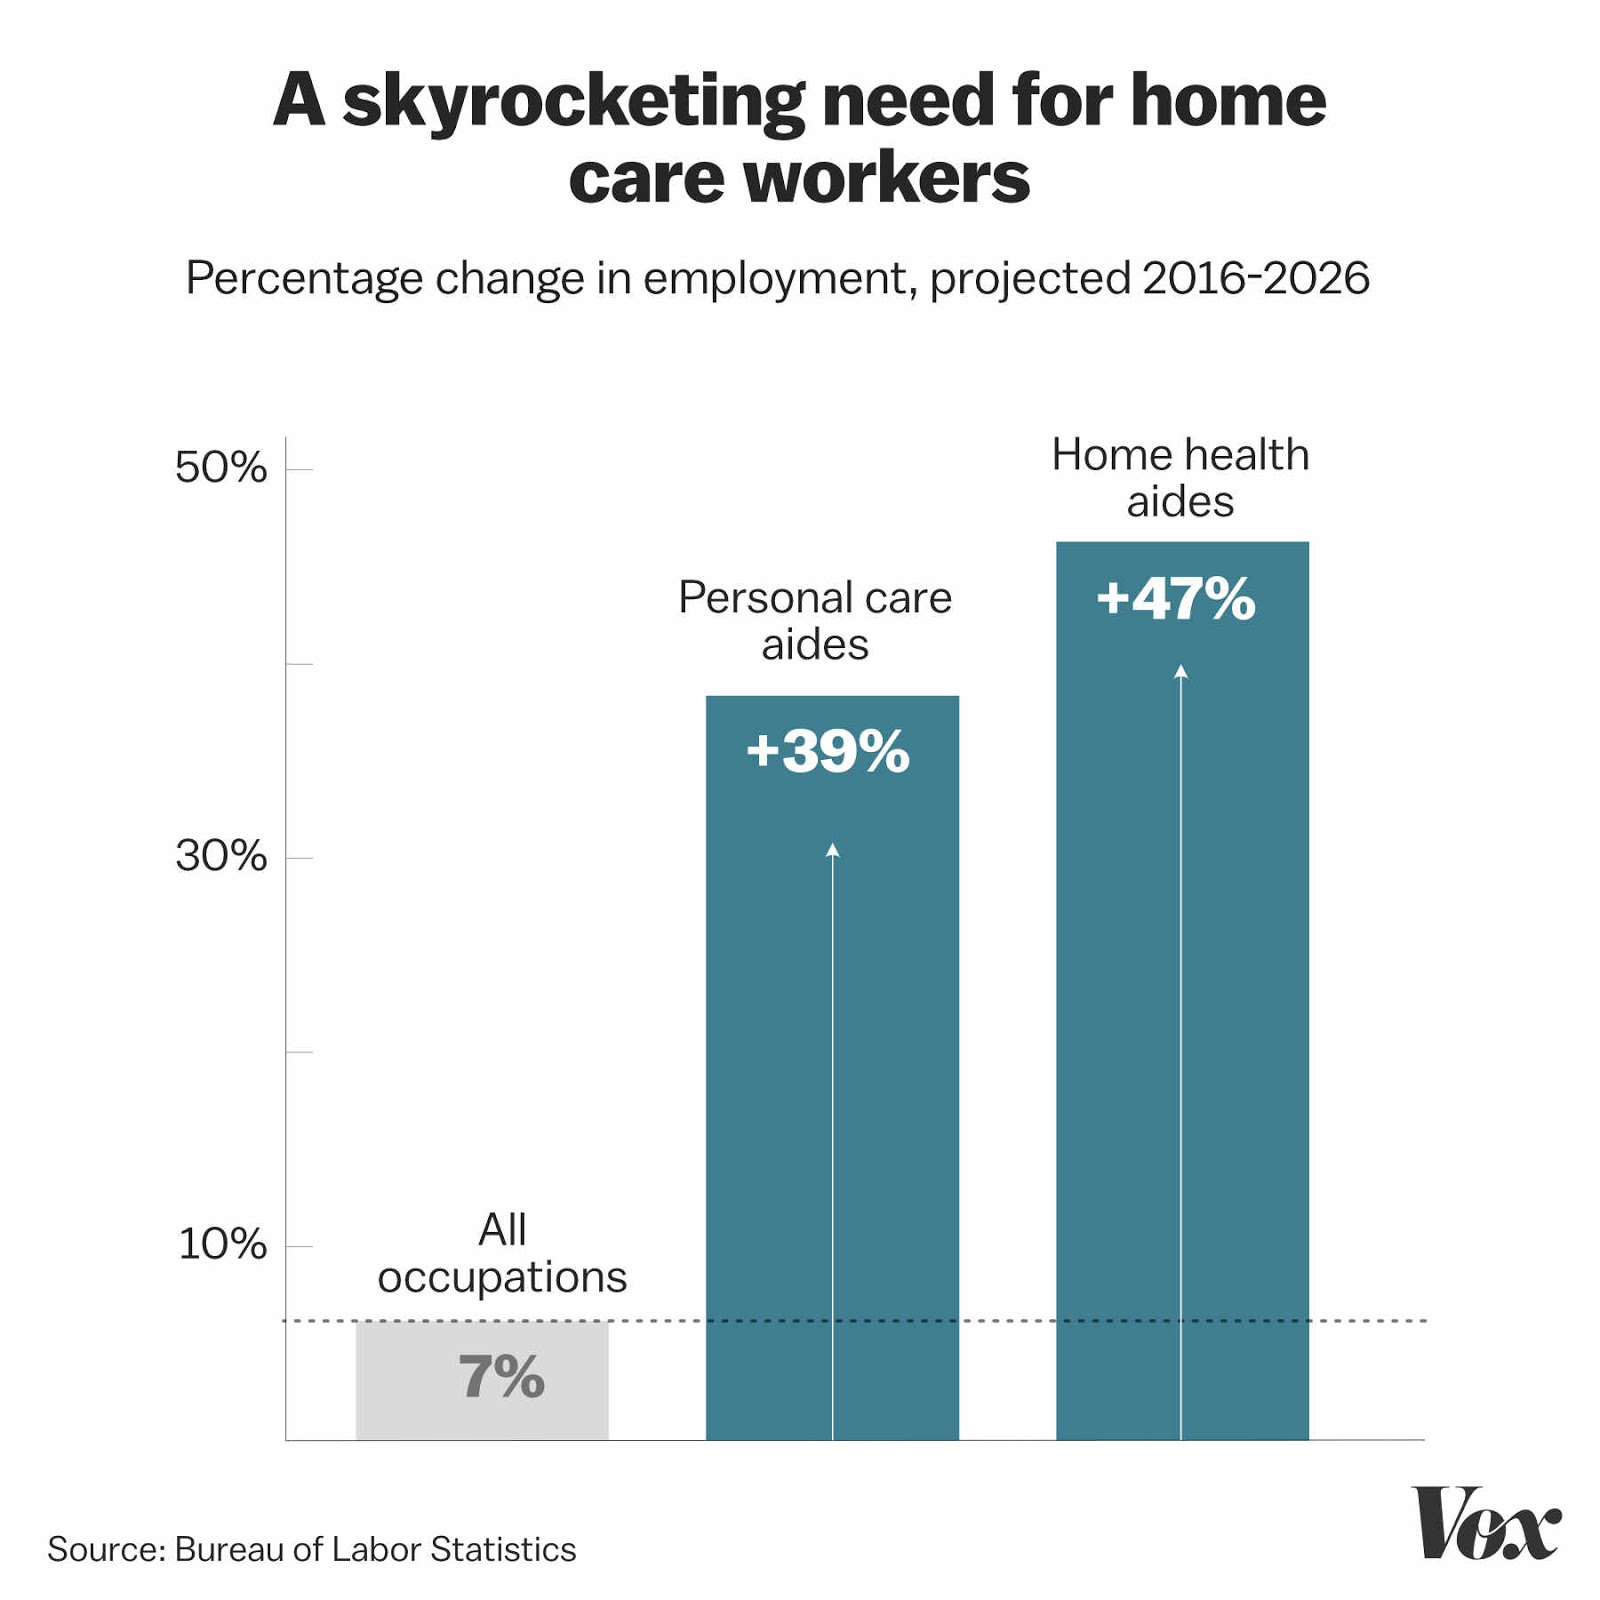 skyrocketing need for home care workers chart